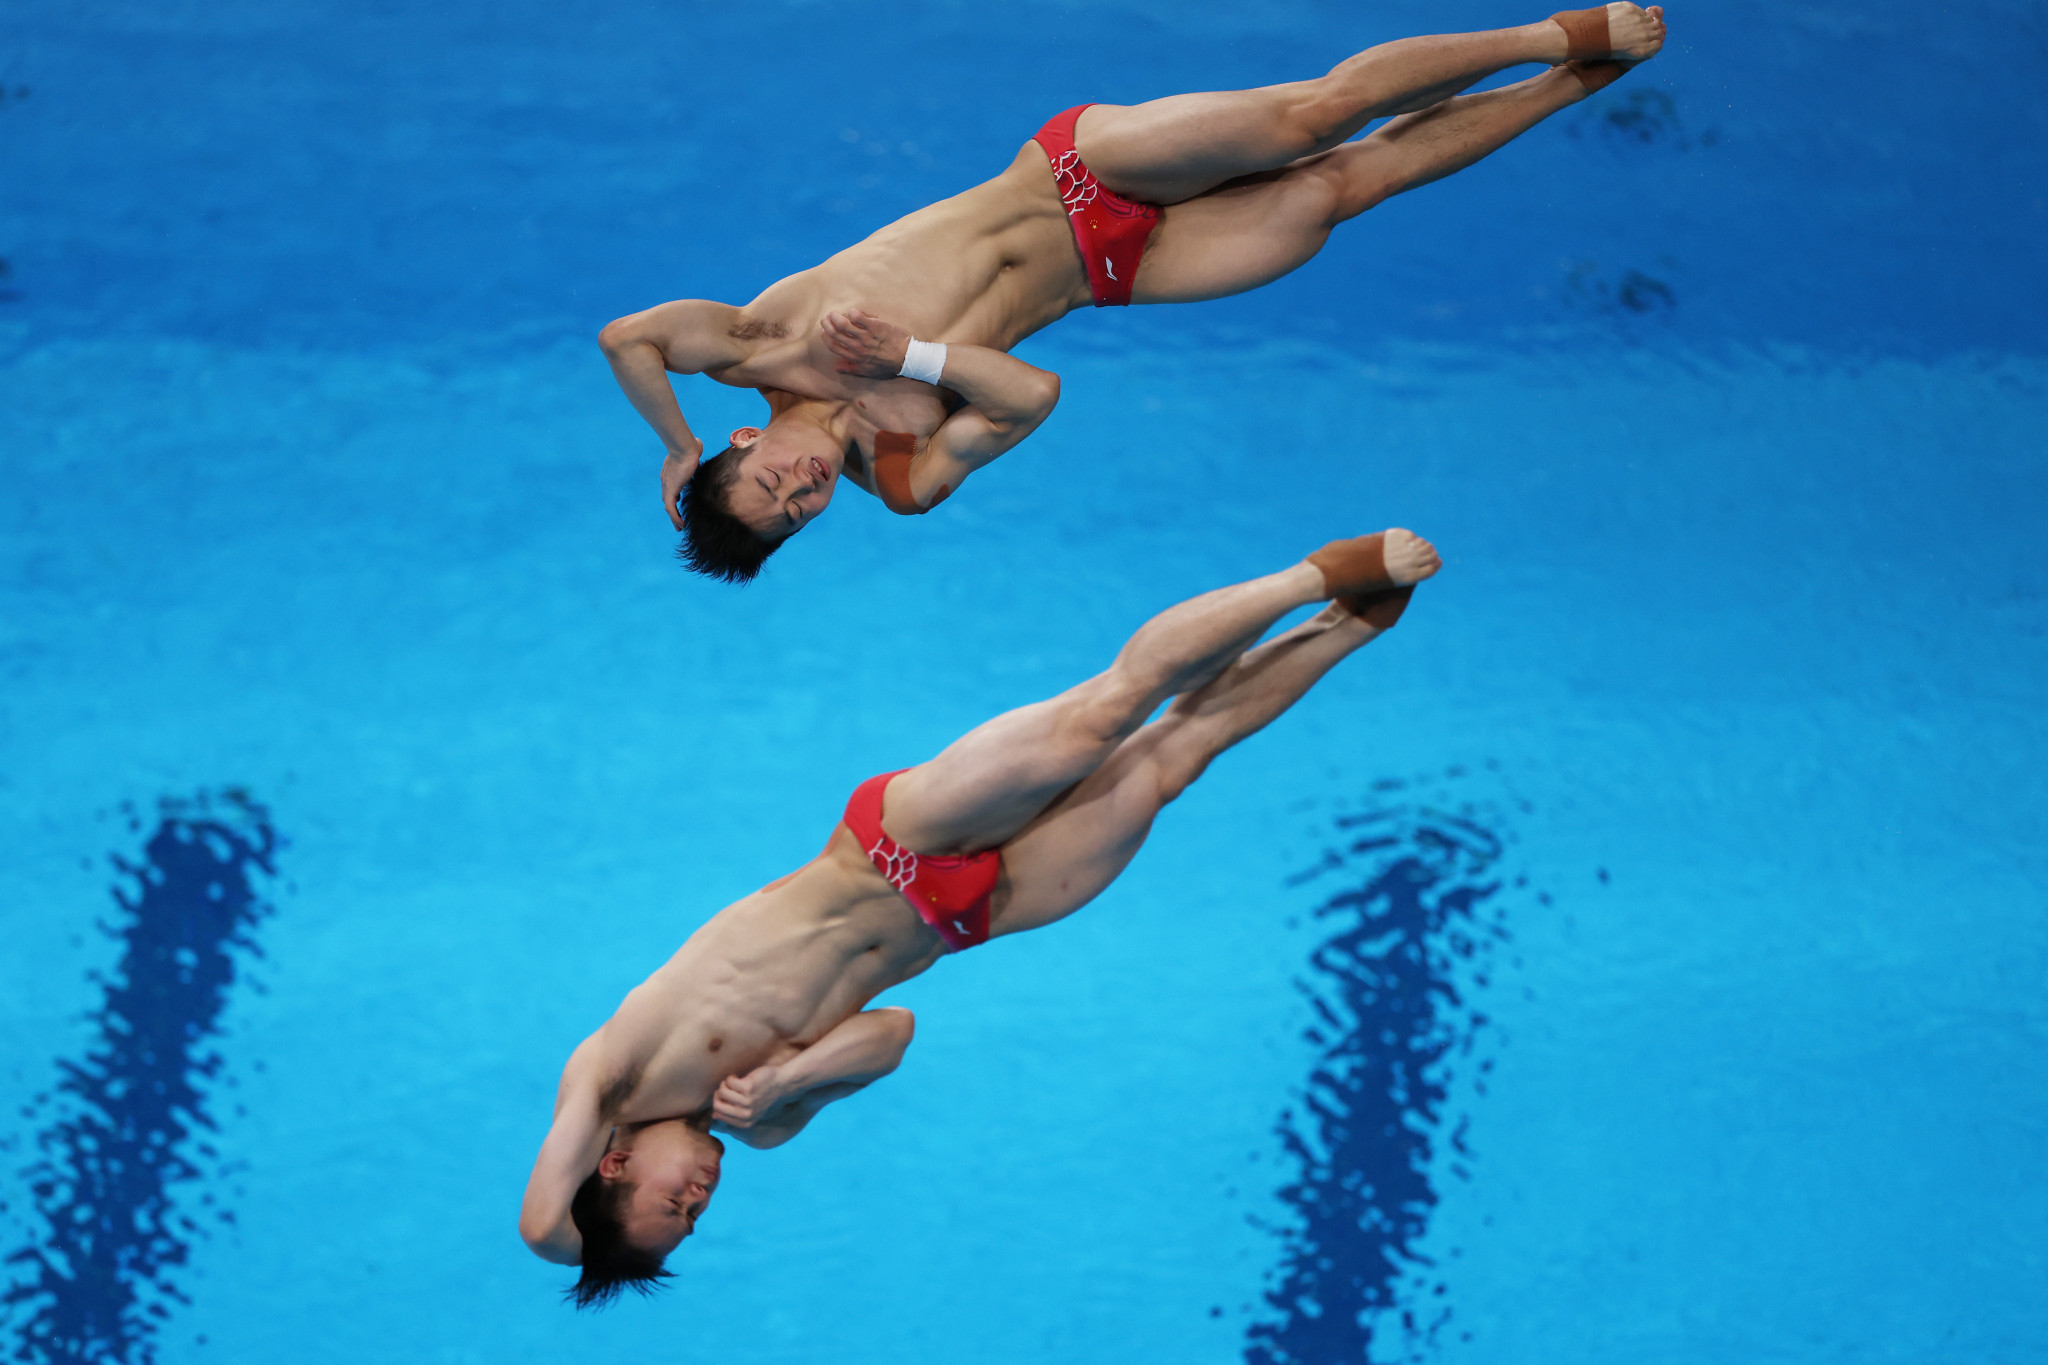 Wang and Xie add to China's proud diving tradition with Tokyo 2020 gold